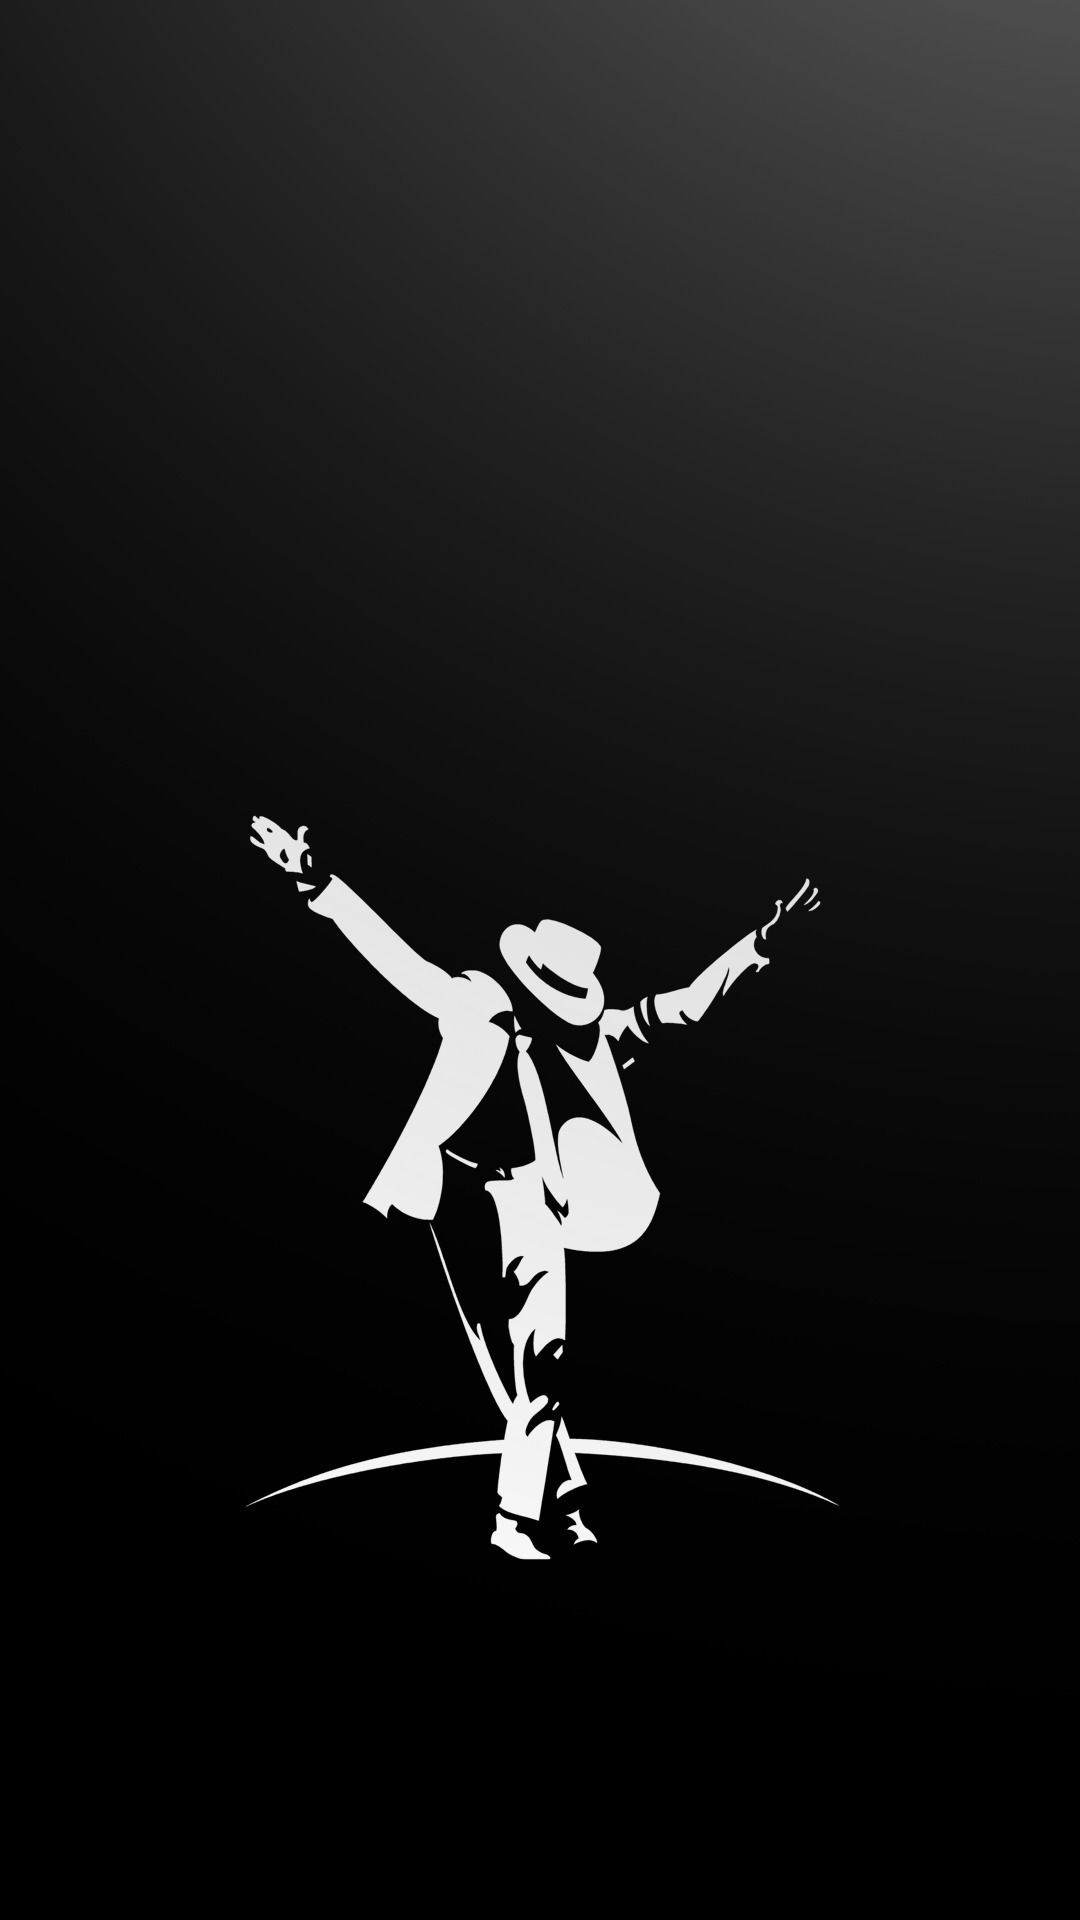 Michael Jackson Dancing Art IPhone 7 Wallpaper